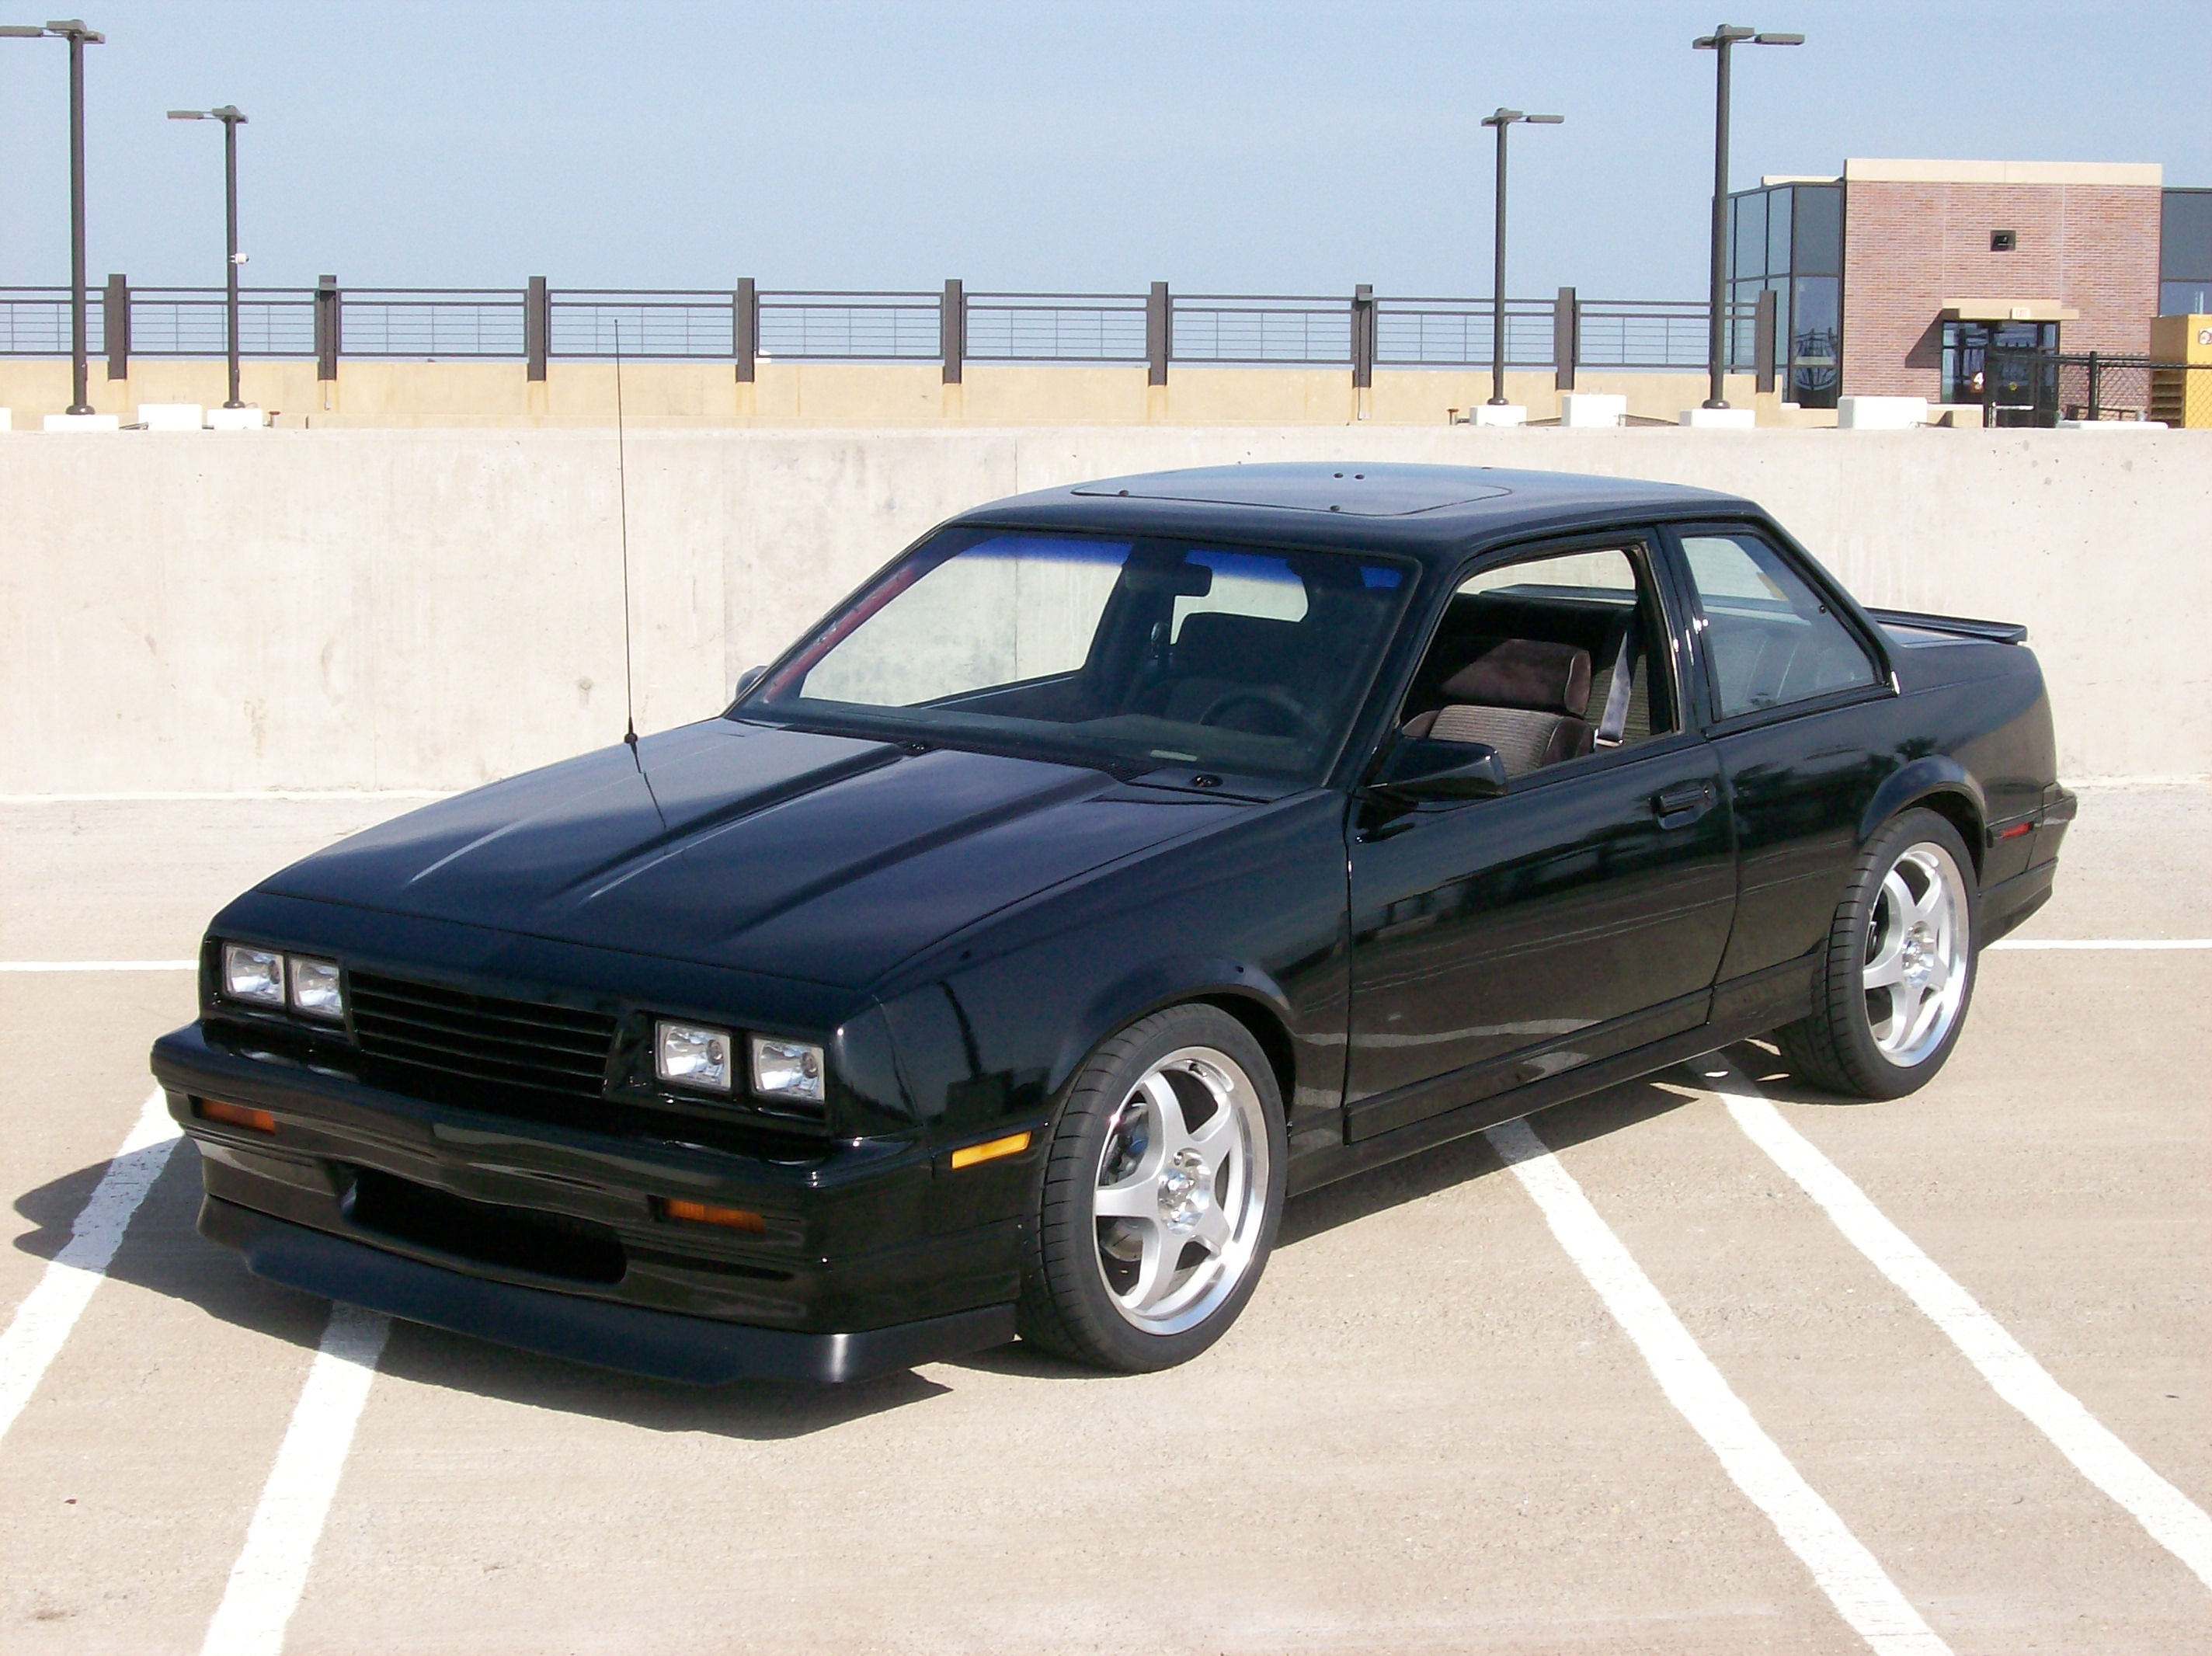 nicks87z24 1987 Chevrolet Cavalier Specs, Photos ...